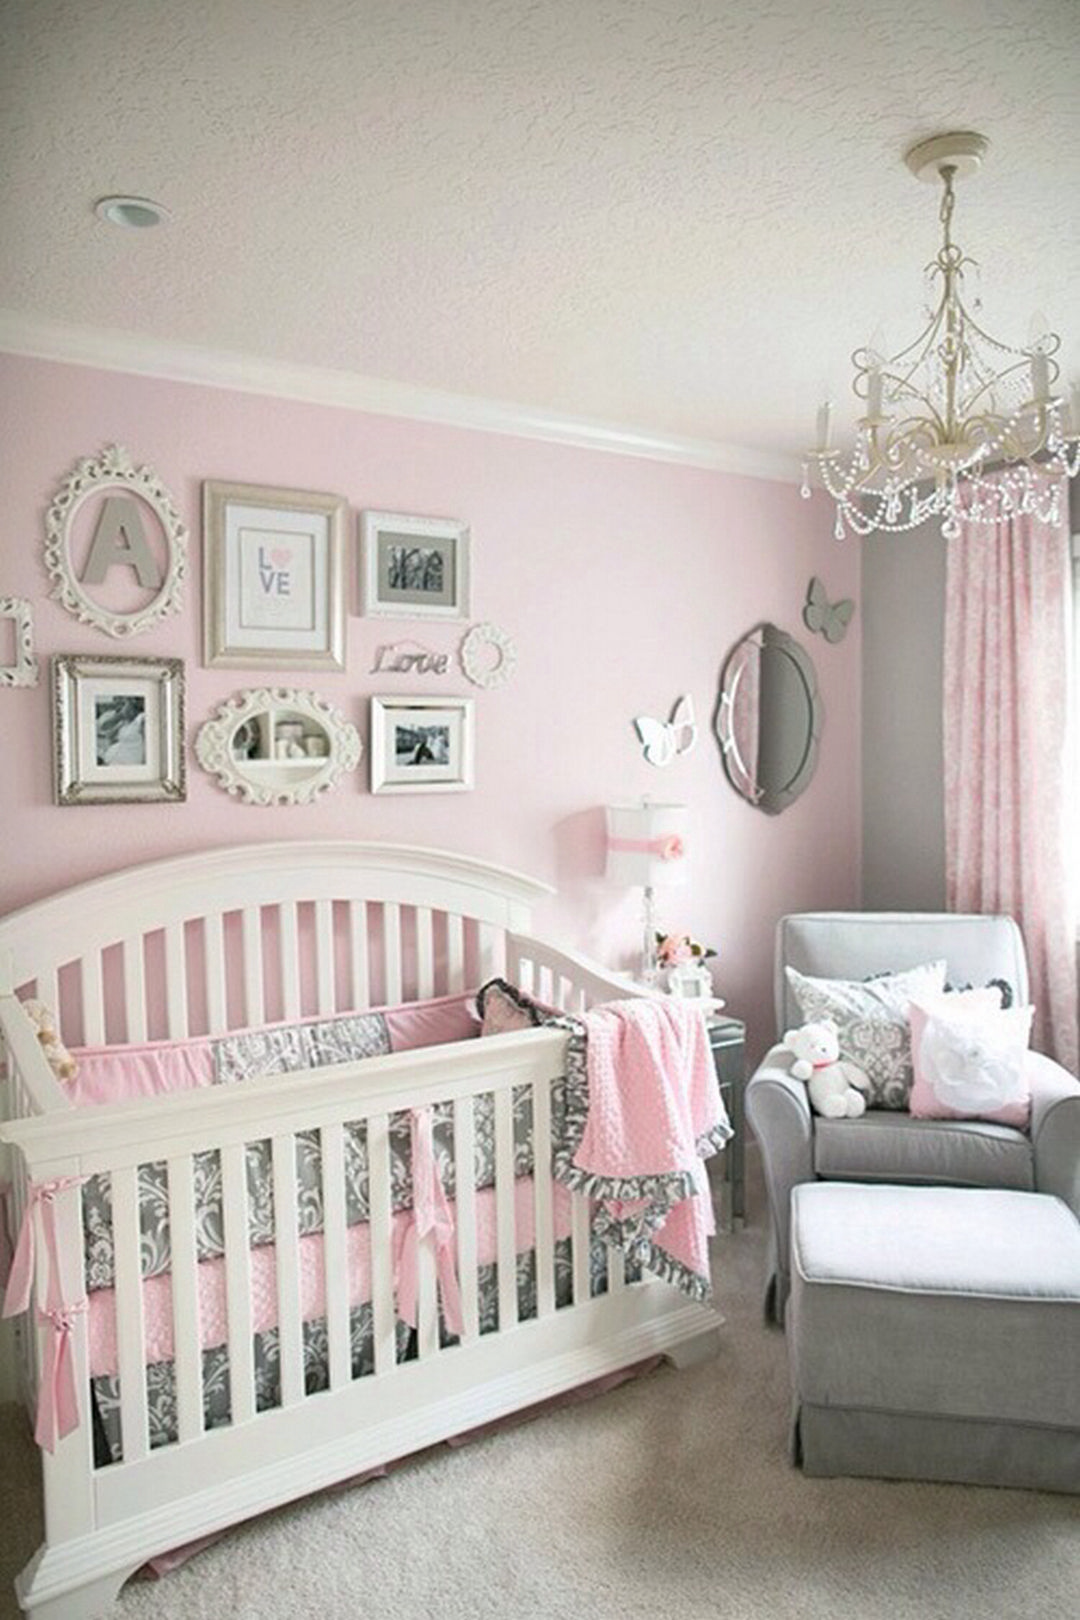 31 Cute Baby Girl Nursery Ideas https://www.Traveller Location/